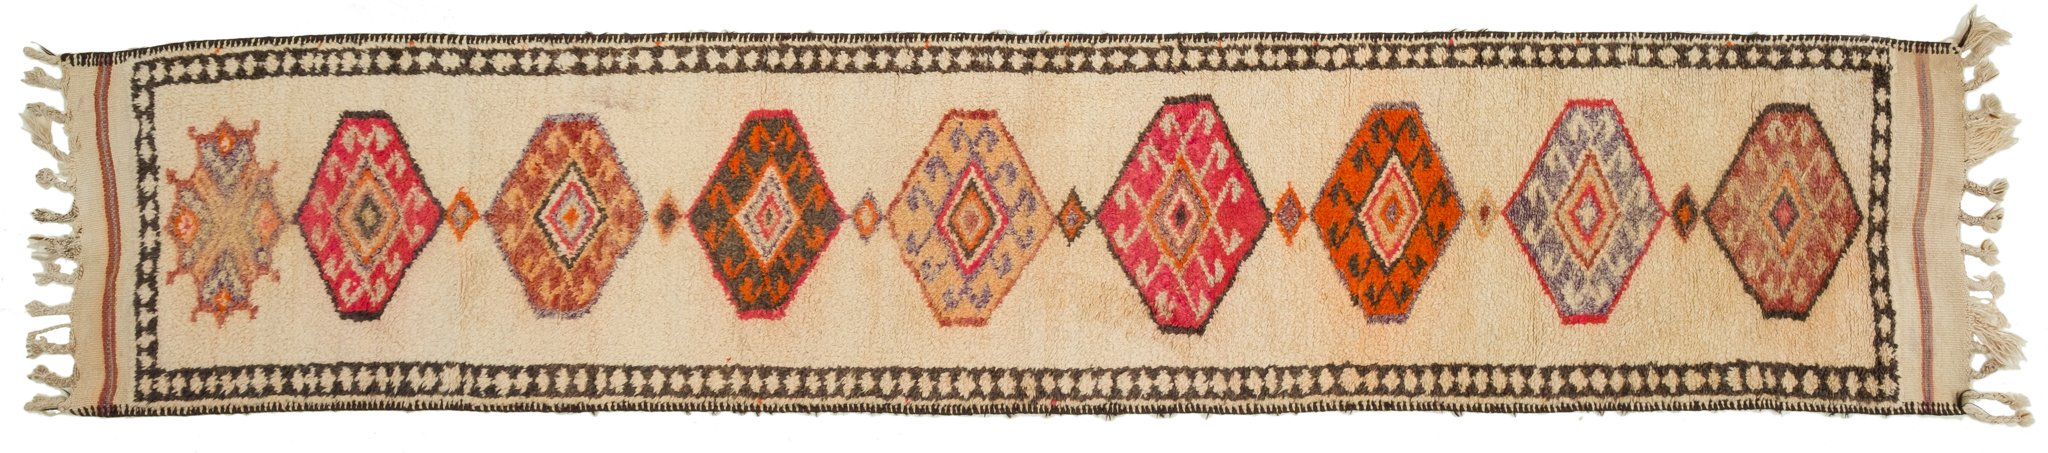 Vintage Turkish Runner Rug Kalinka